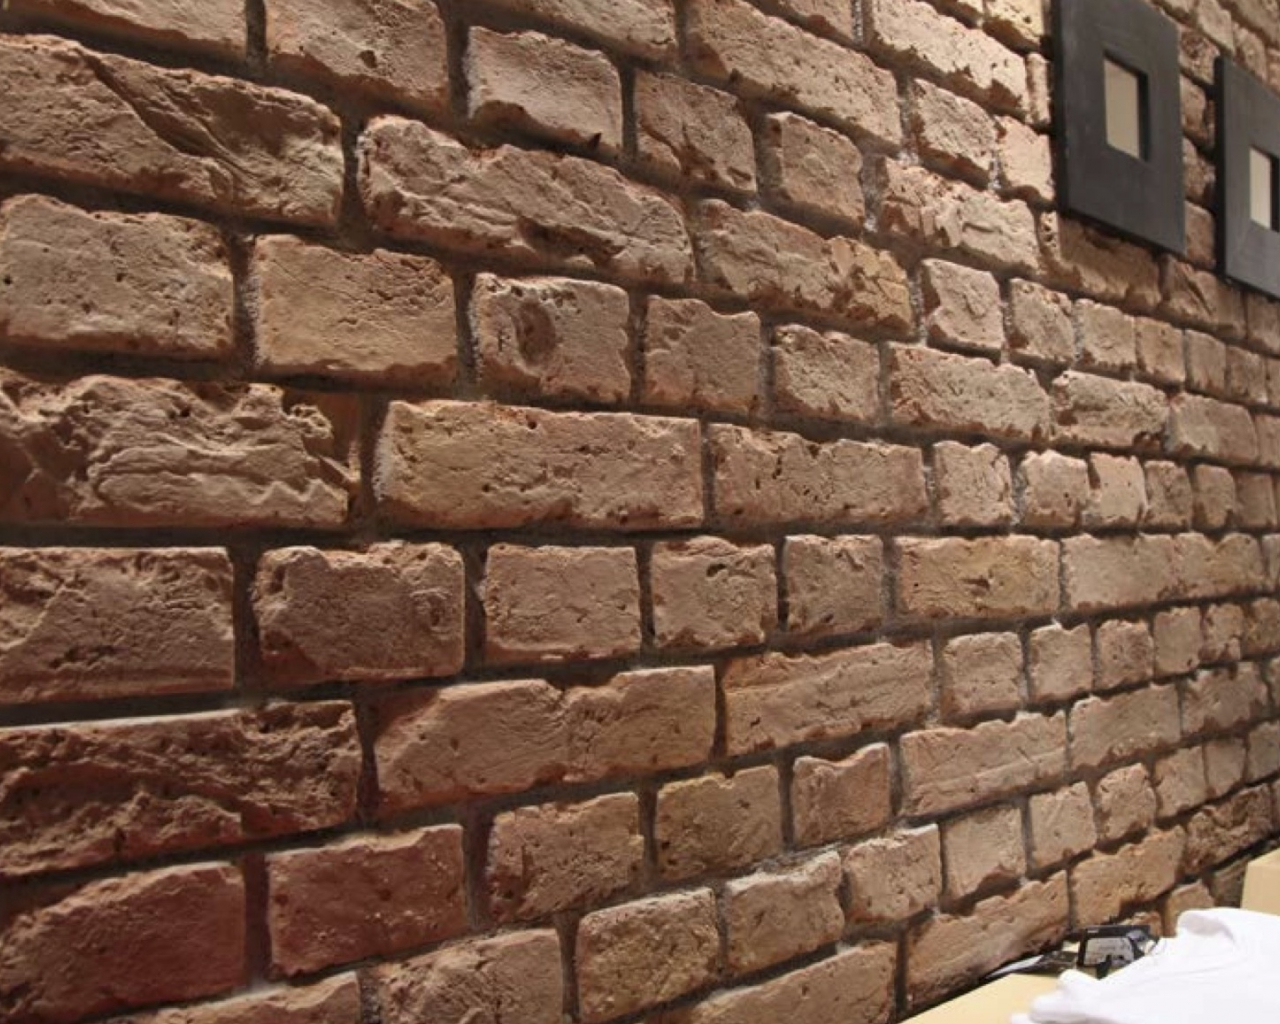 Free Download Faux Brick Interior Wall Panels 1737x1157 For Your Desktop Mobile Tablet Explore 48 Faux Brick Wallpaper Home Depot Faux Brick Wallpaper Faux Shiplap Wallpaper Wood Wallpaper For Walls